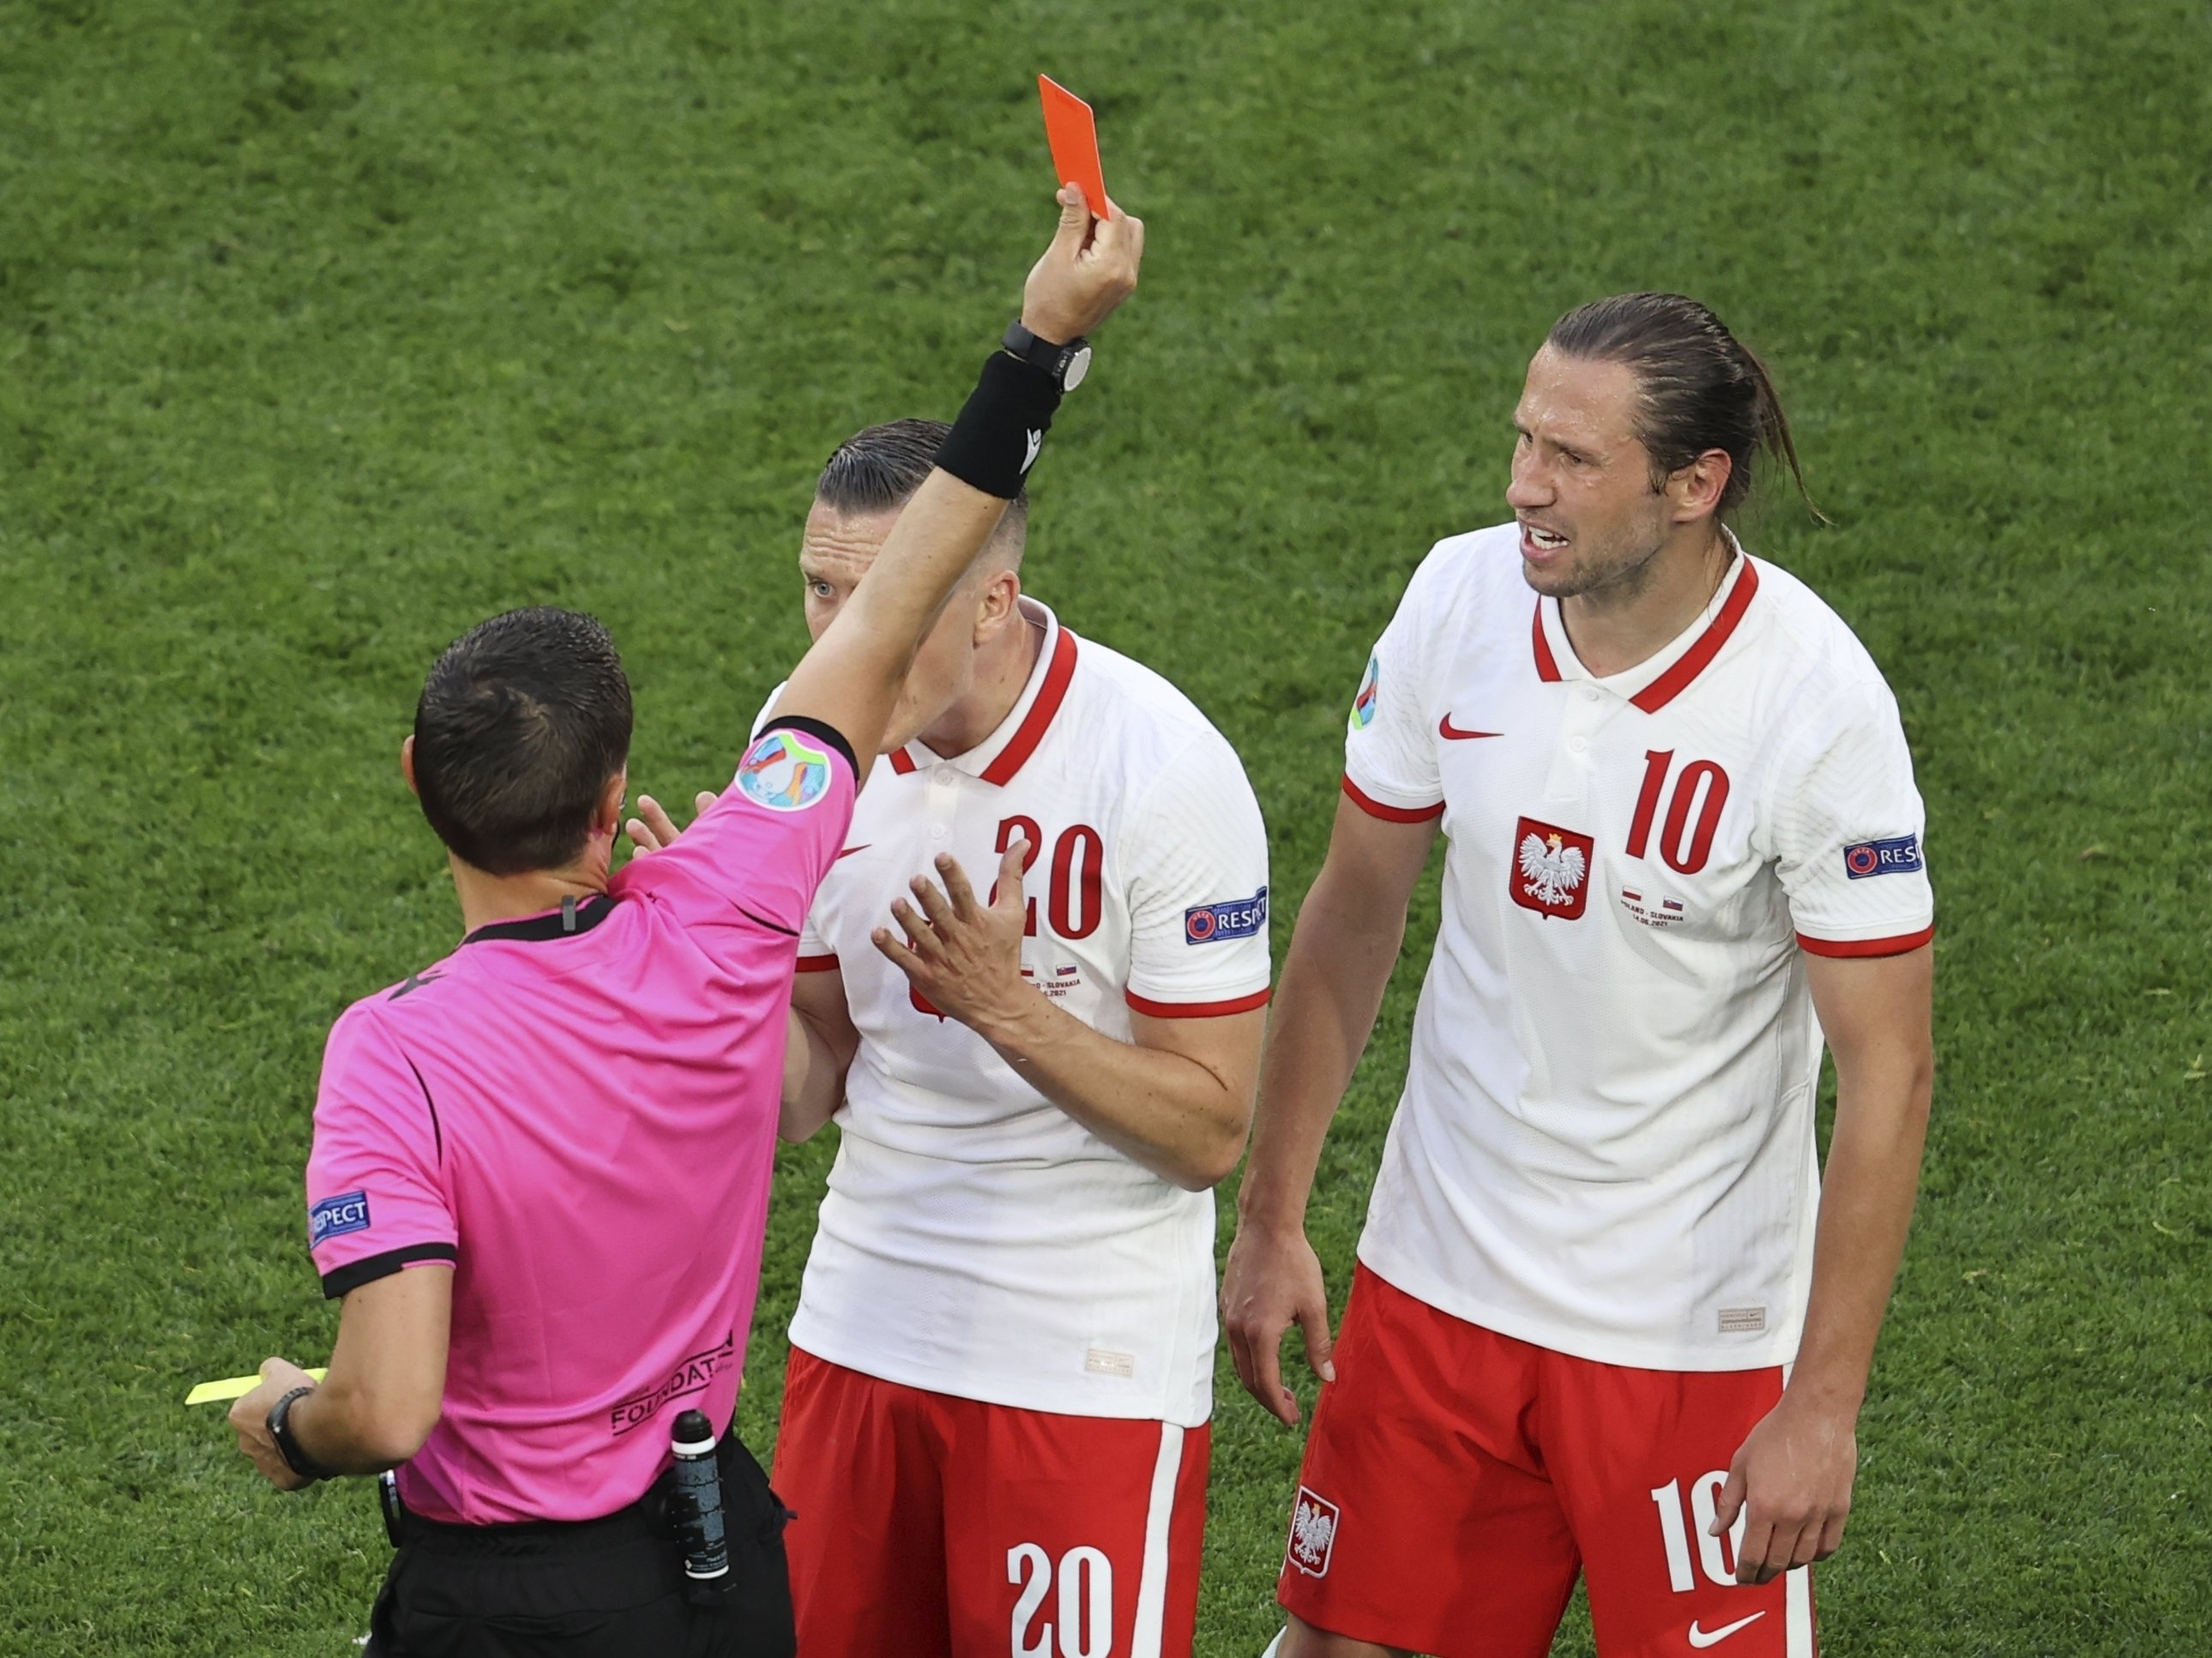 Referee Ovidiu Hategan shows a red card to Poland's Grzegorz Krychowiak (R) during the UEFA Euro 2020 Group E match between Poland and Slovakia at Gazprom Arena Stadium in St. Petersburg, Russia, Monday, June 14, 2021. (Anton Vaganov via AP)